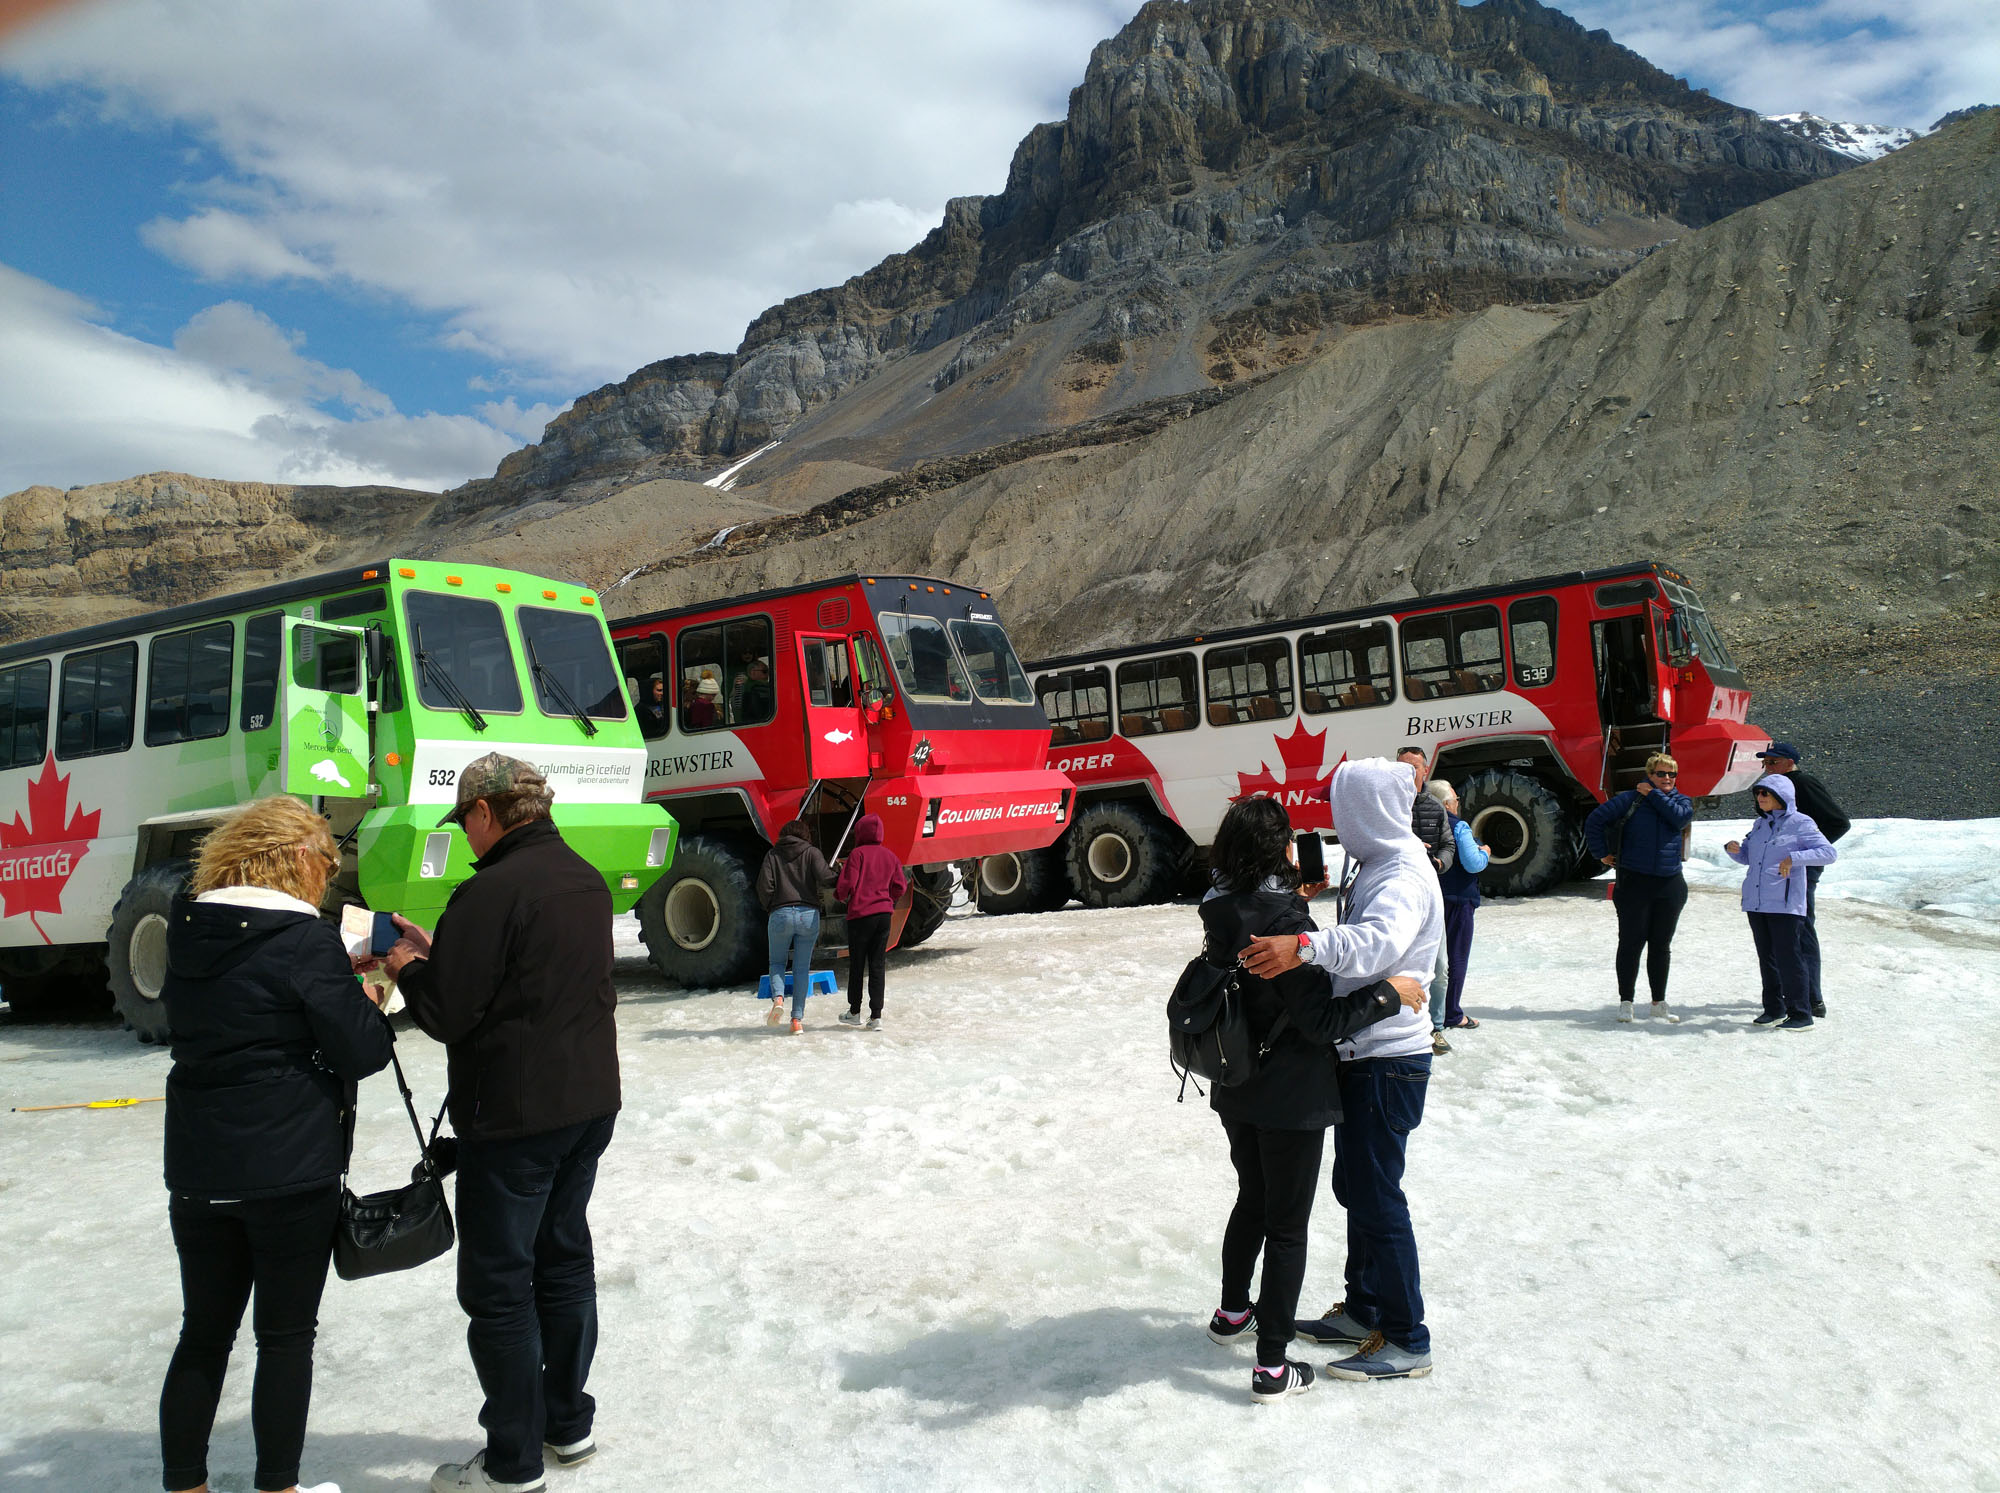 The Columbia Icefield Adventure to Athabasca Glacier is one of the most popular tourist activities in the Canadian Rockies. (Craig Davis/Craigslegztravels.com)